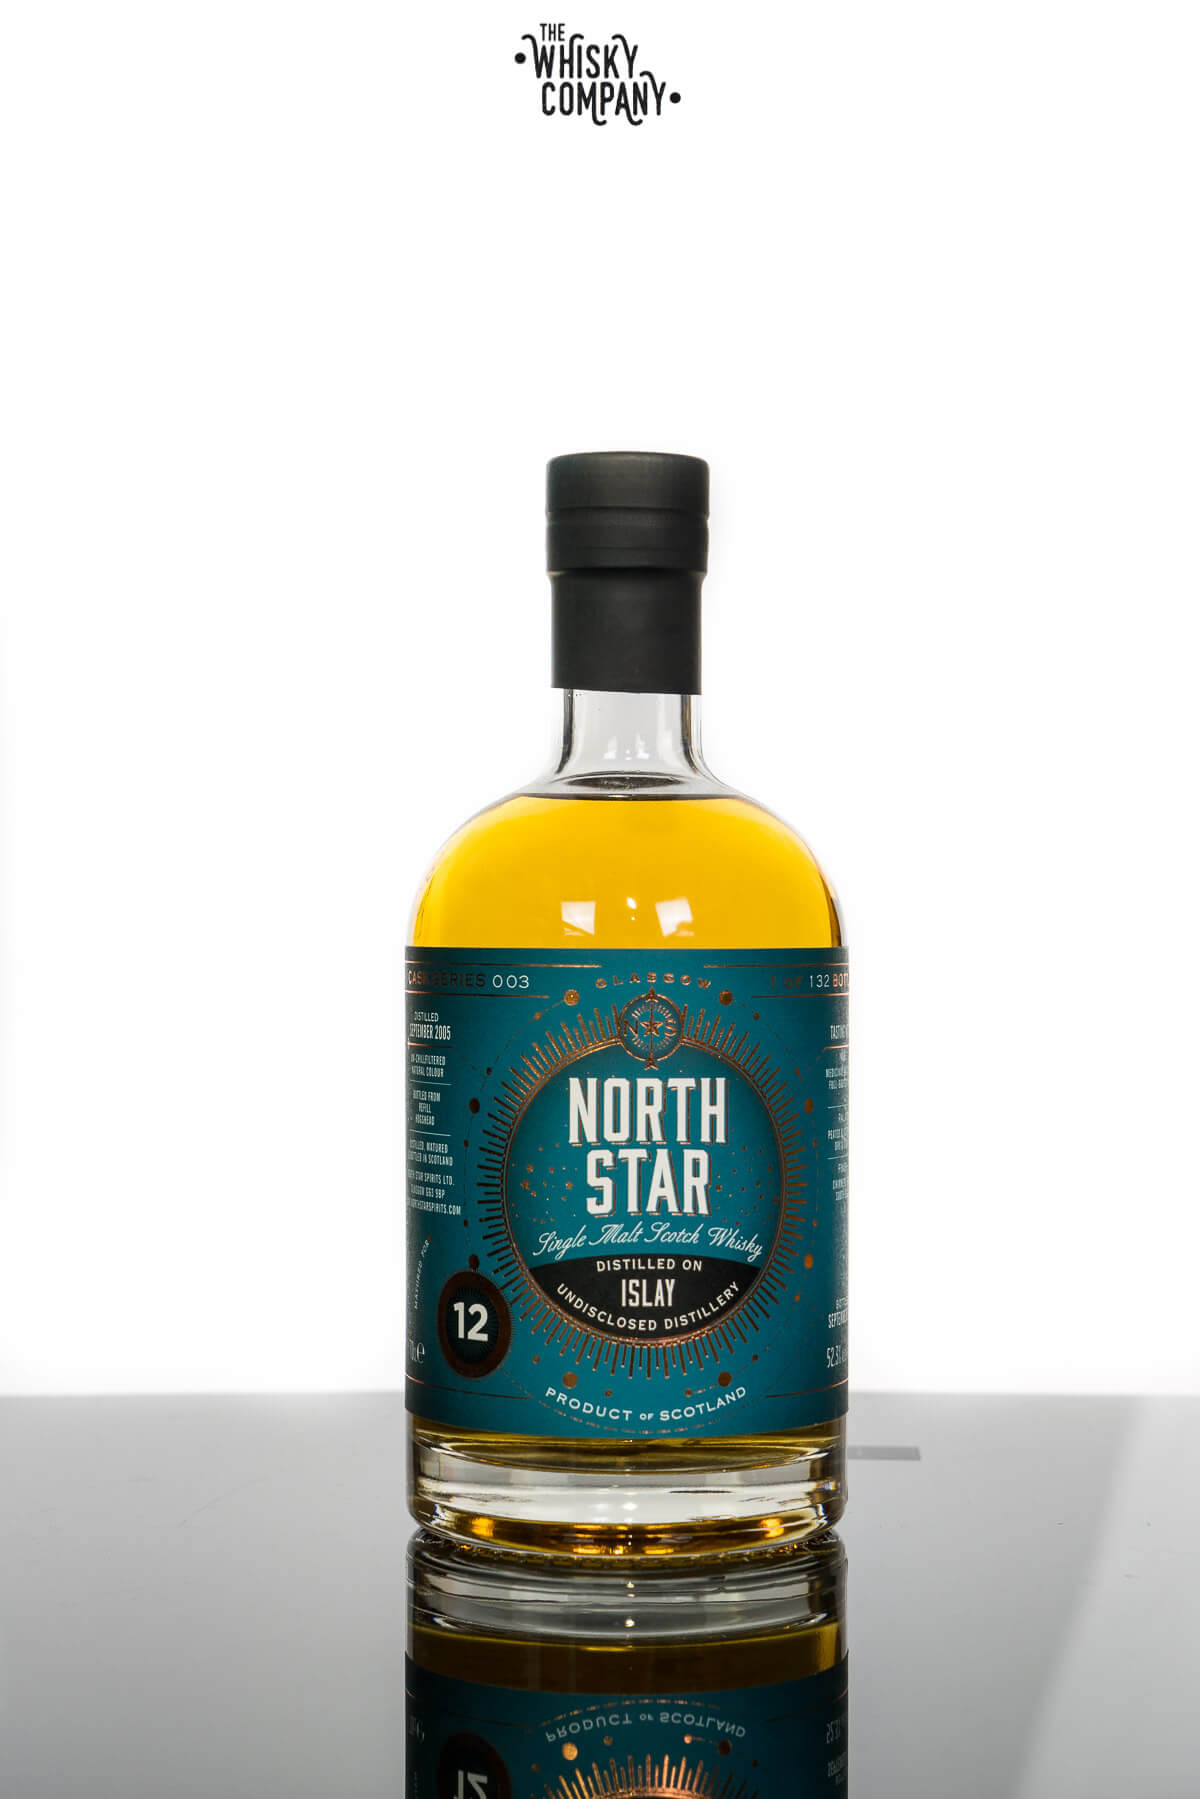 North Star Islay Aged 12 Years Single Malt Scotch Whisky (700ml)